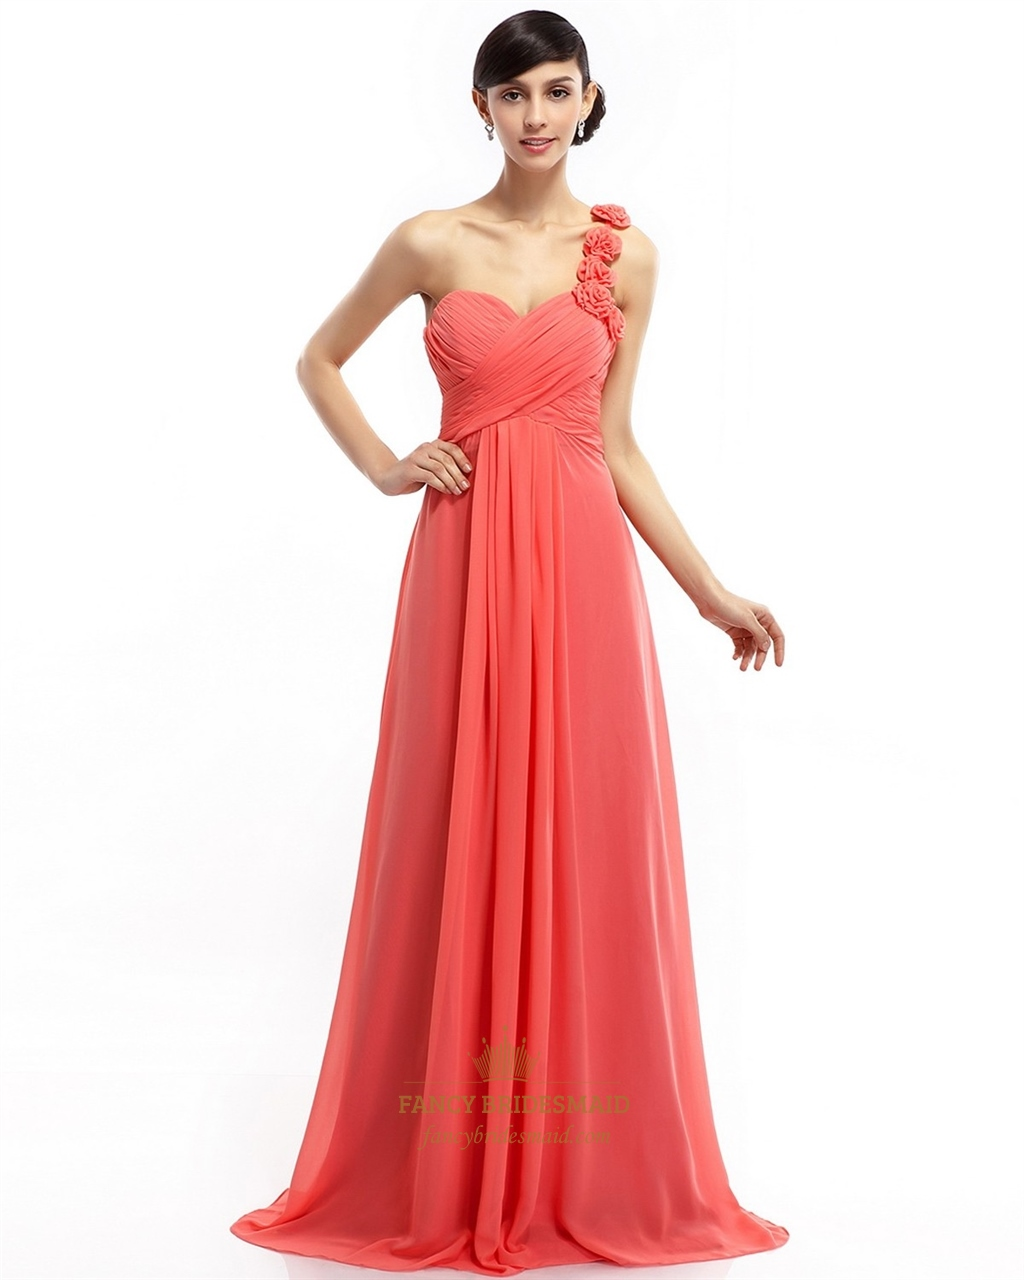 Coral Empire One Shoulder Chiffon Bridesmaid Dress With Ruffle ...